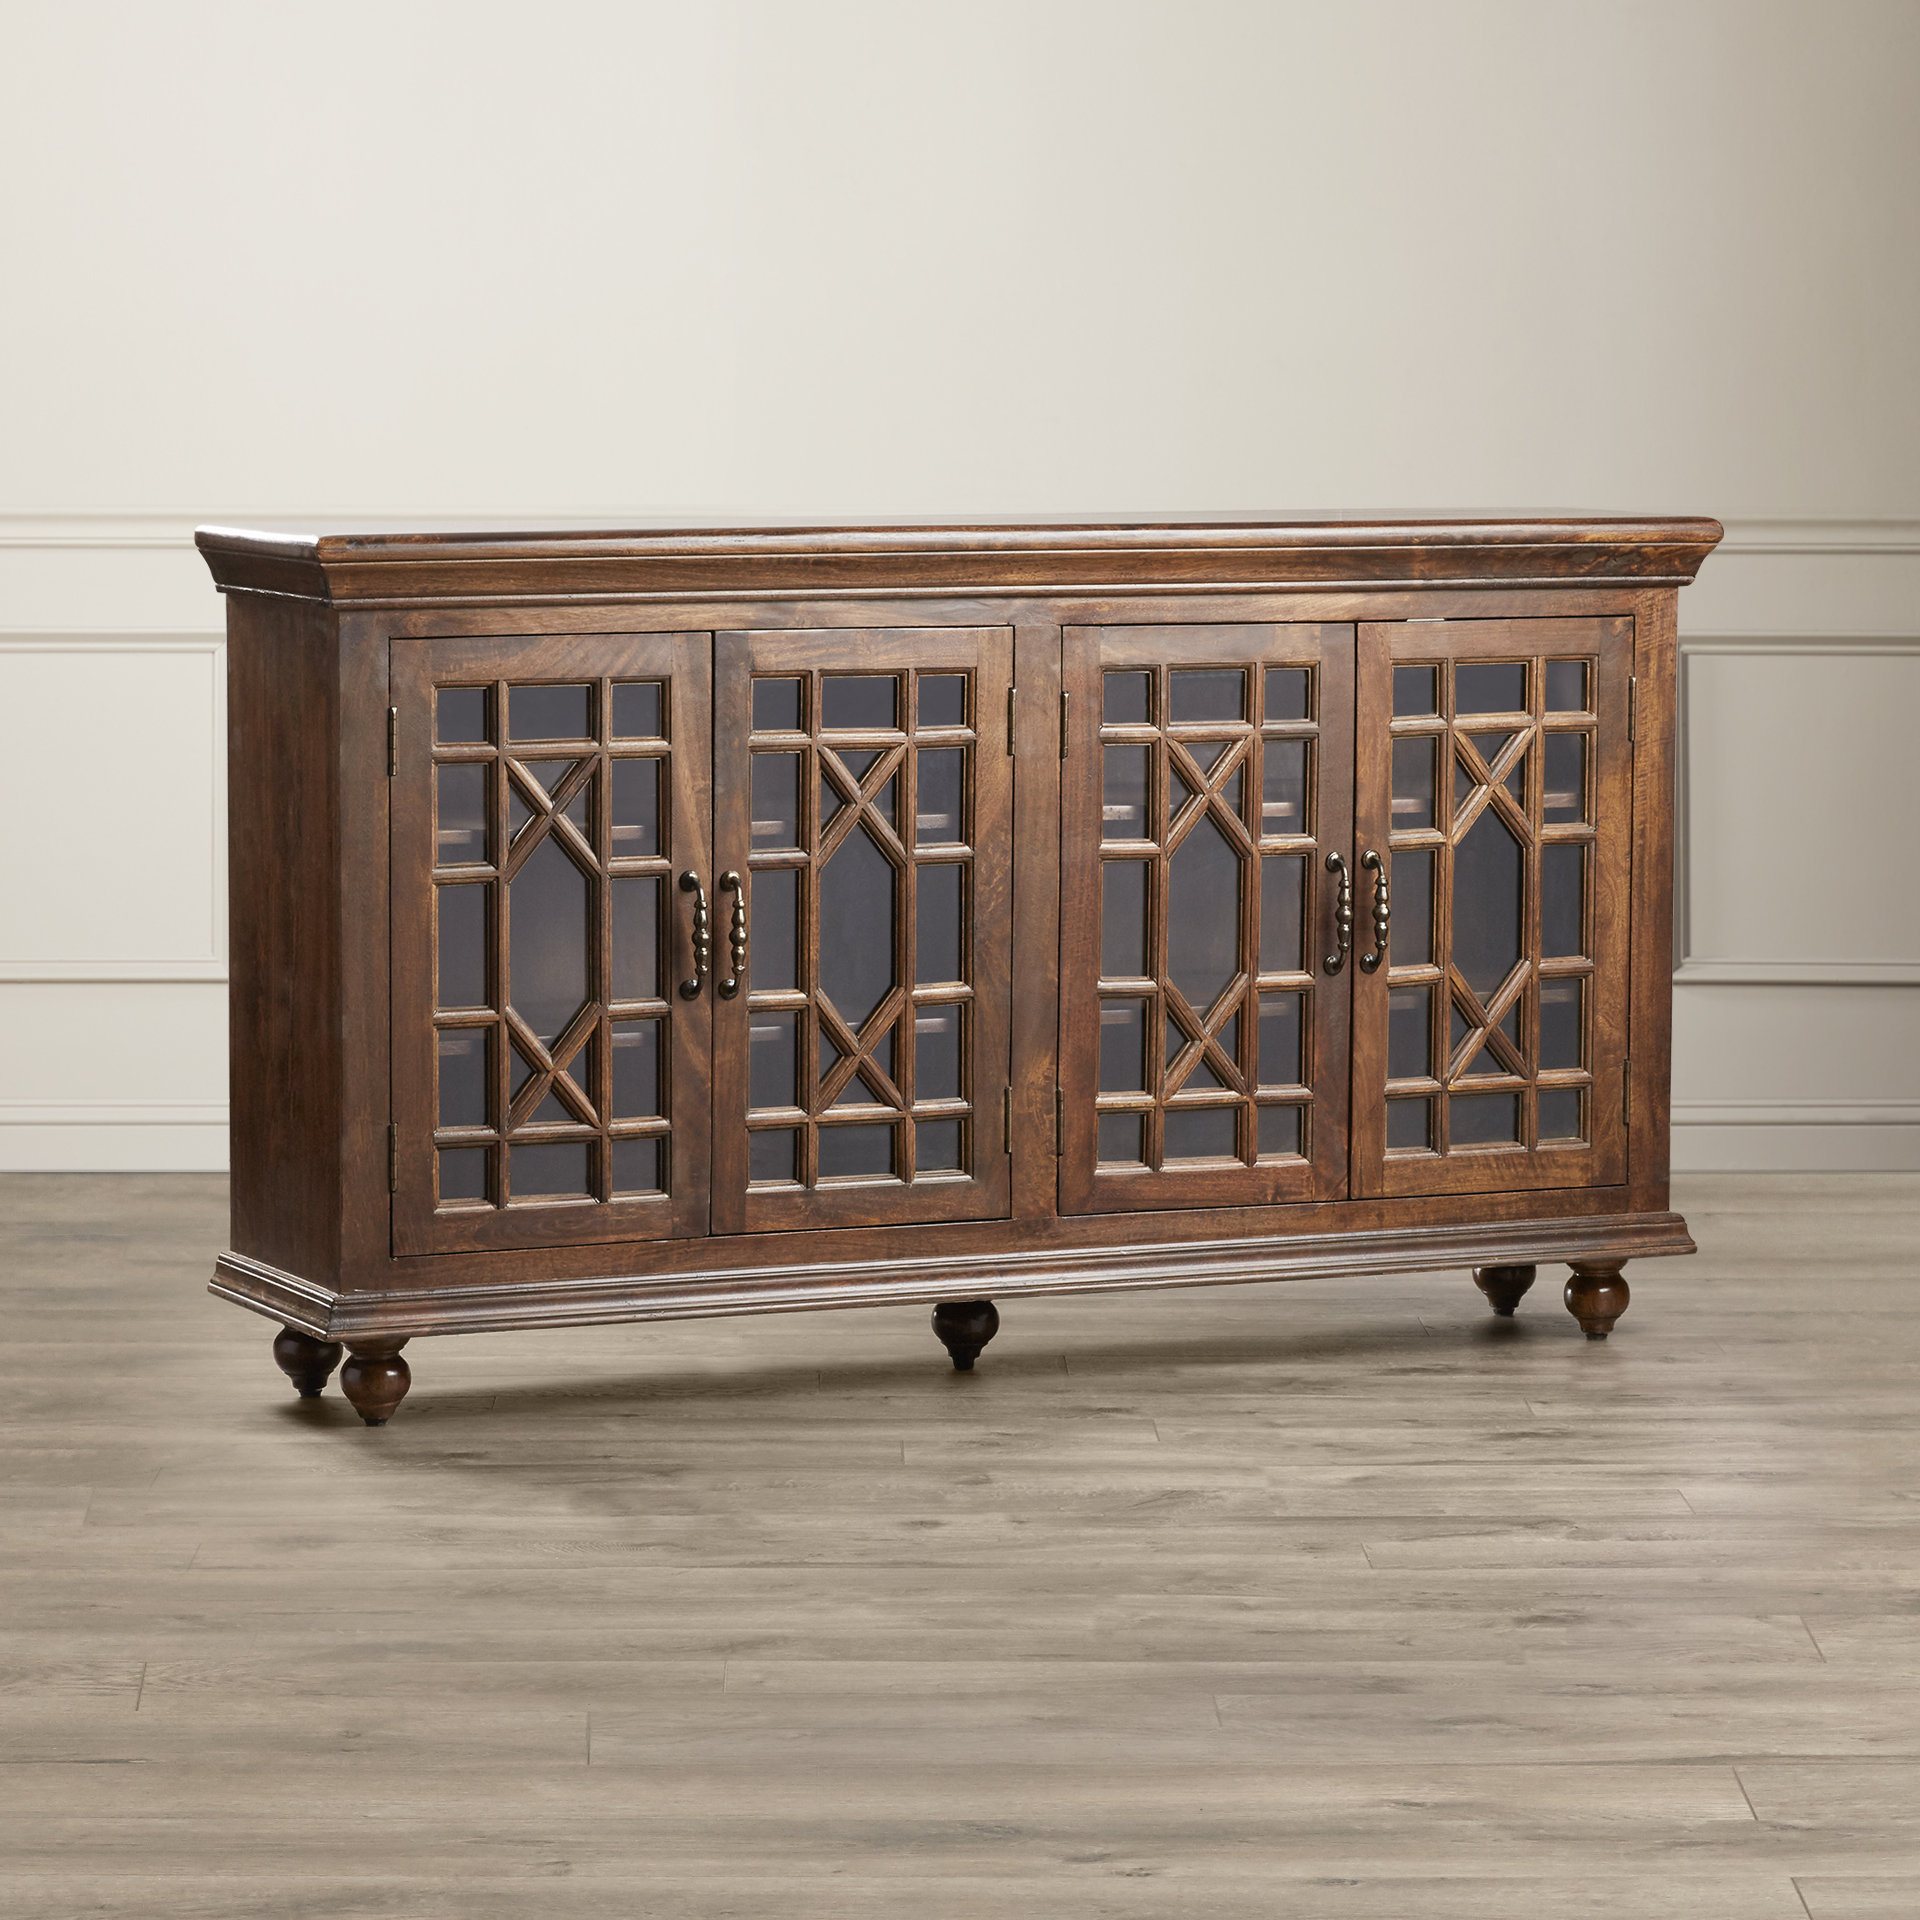 Darby Home Co Sideboards & Buffets You'll Love In 2019 | Wayfair For Hewlett Sideboards (View 6 of 20)